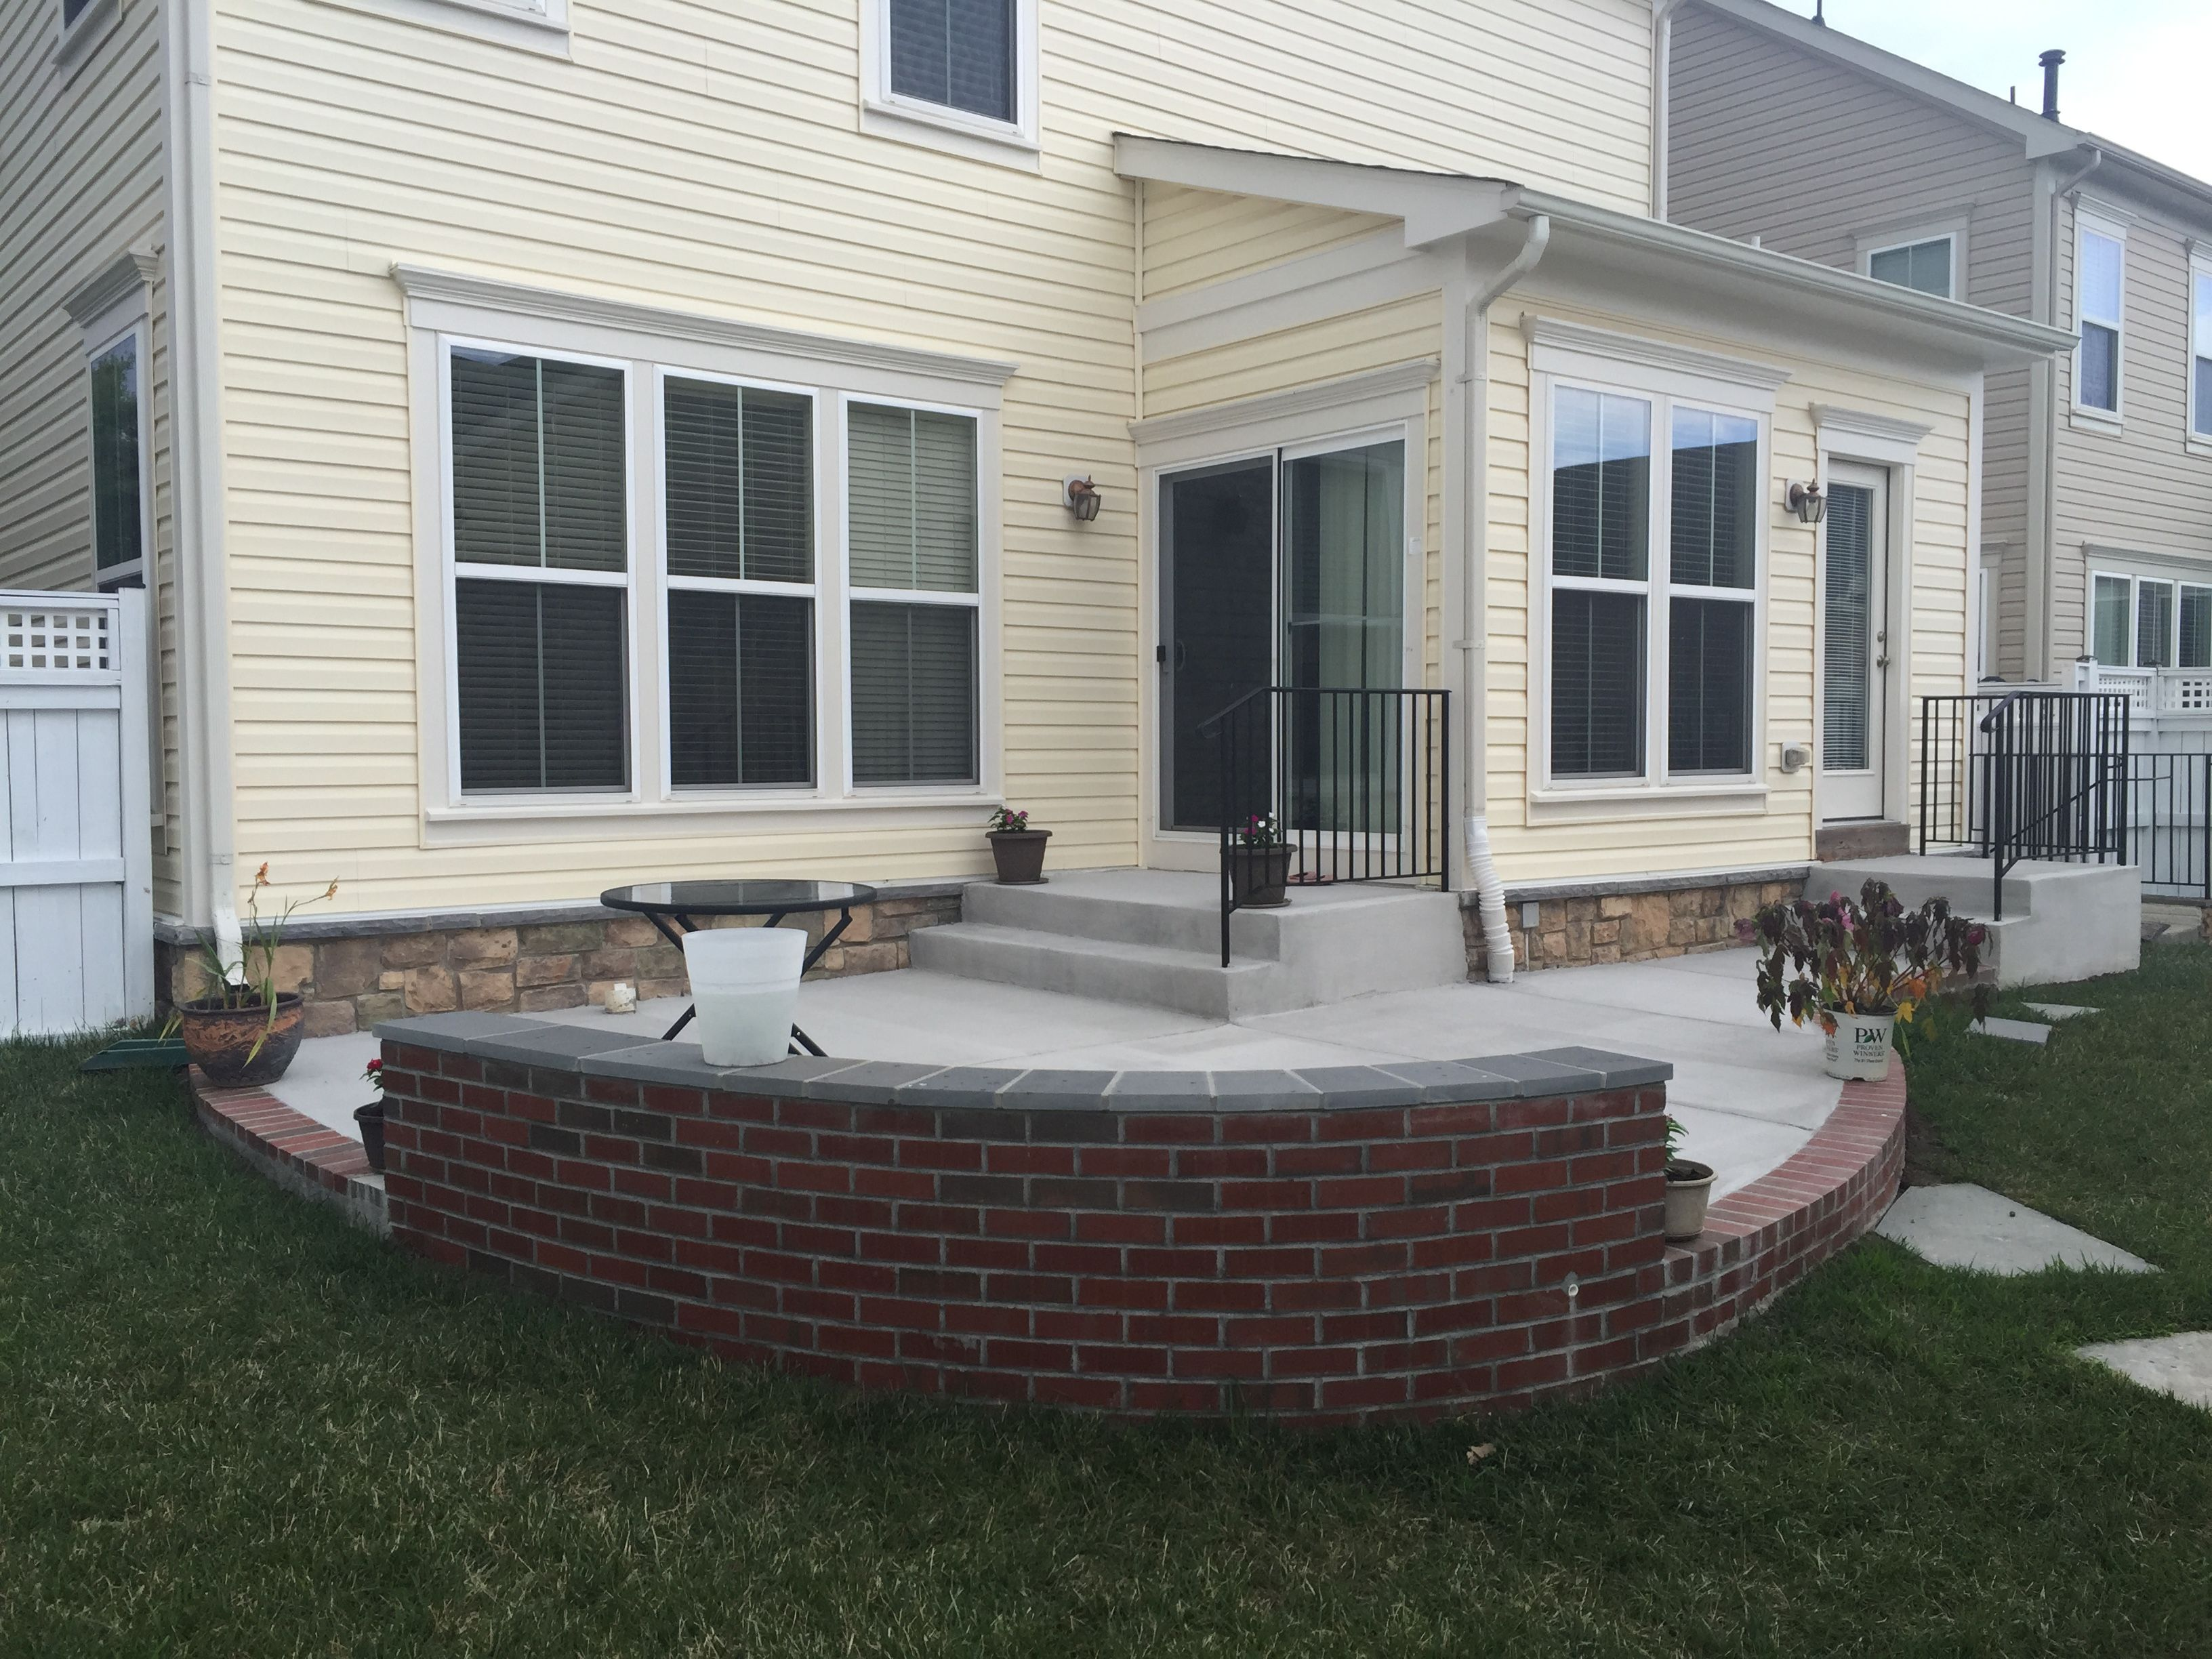 Concrete Patio With A Brick Seating Wall And Border In